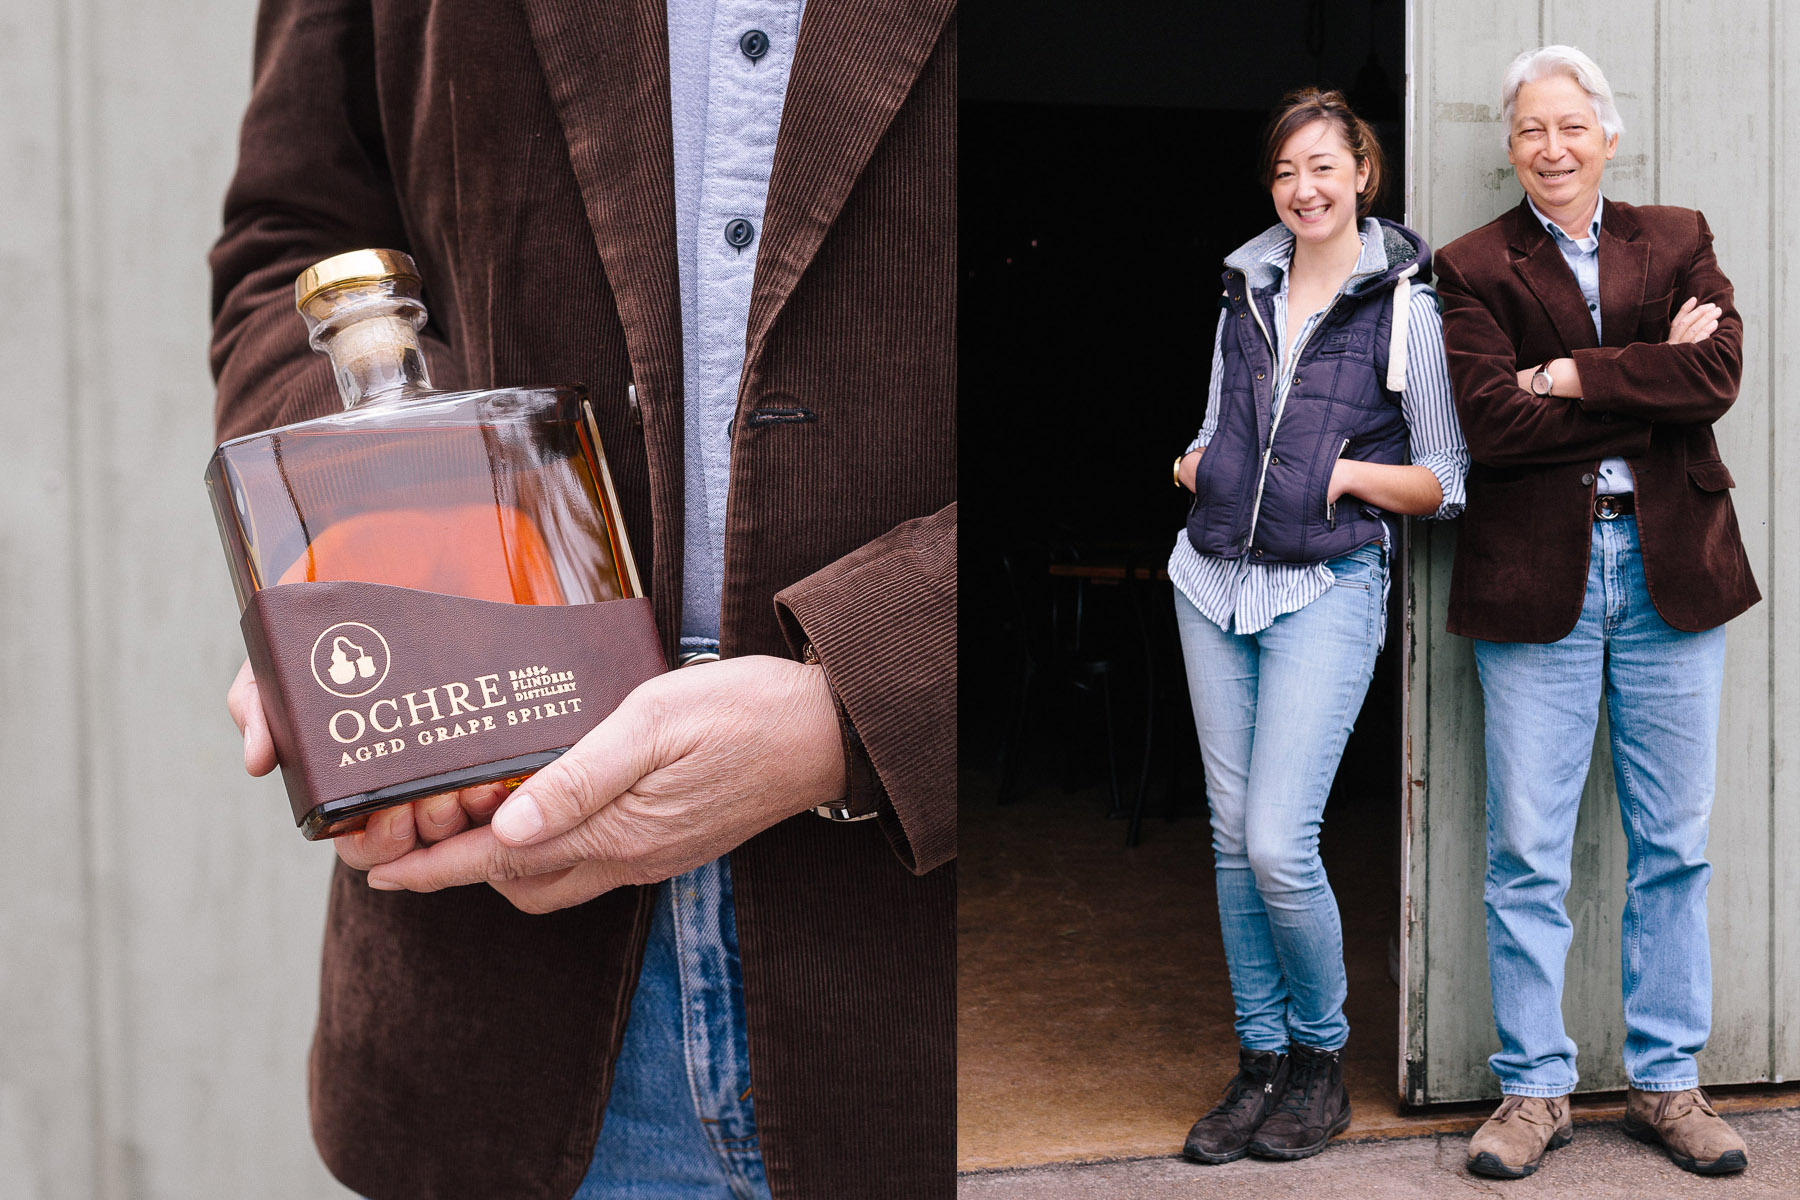 The Peninsula is thriving with unique and boutique local producers. Pictured here are father/daughter owners of Bass & Flinders Distillery, Wayne and Holly Klintworth, with their award-winning, double-distilled and aged brandy.